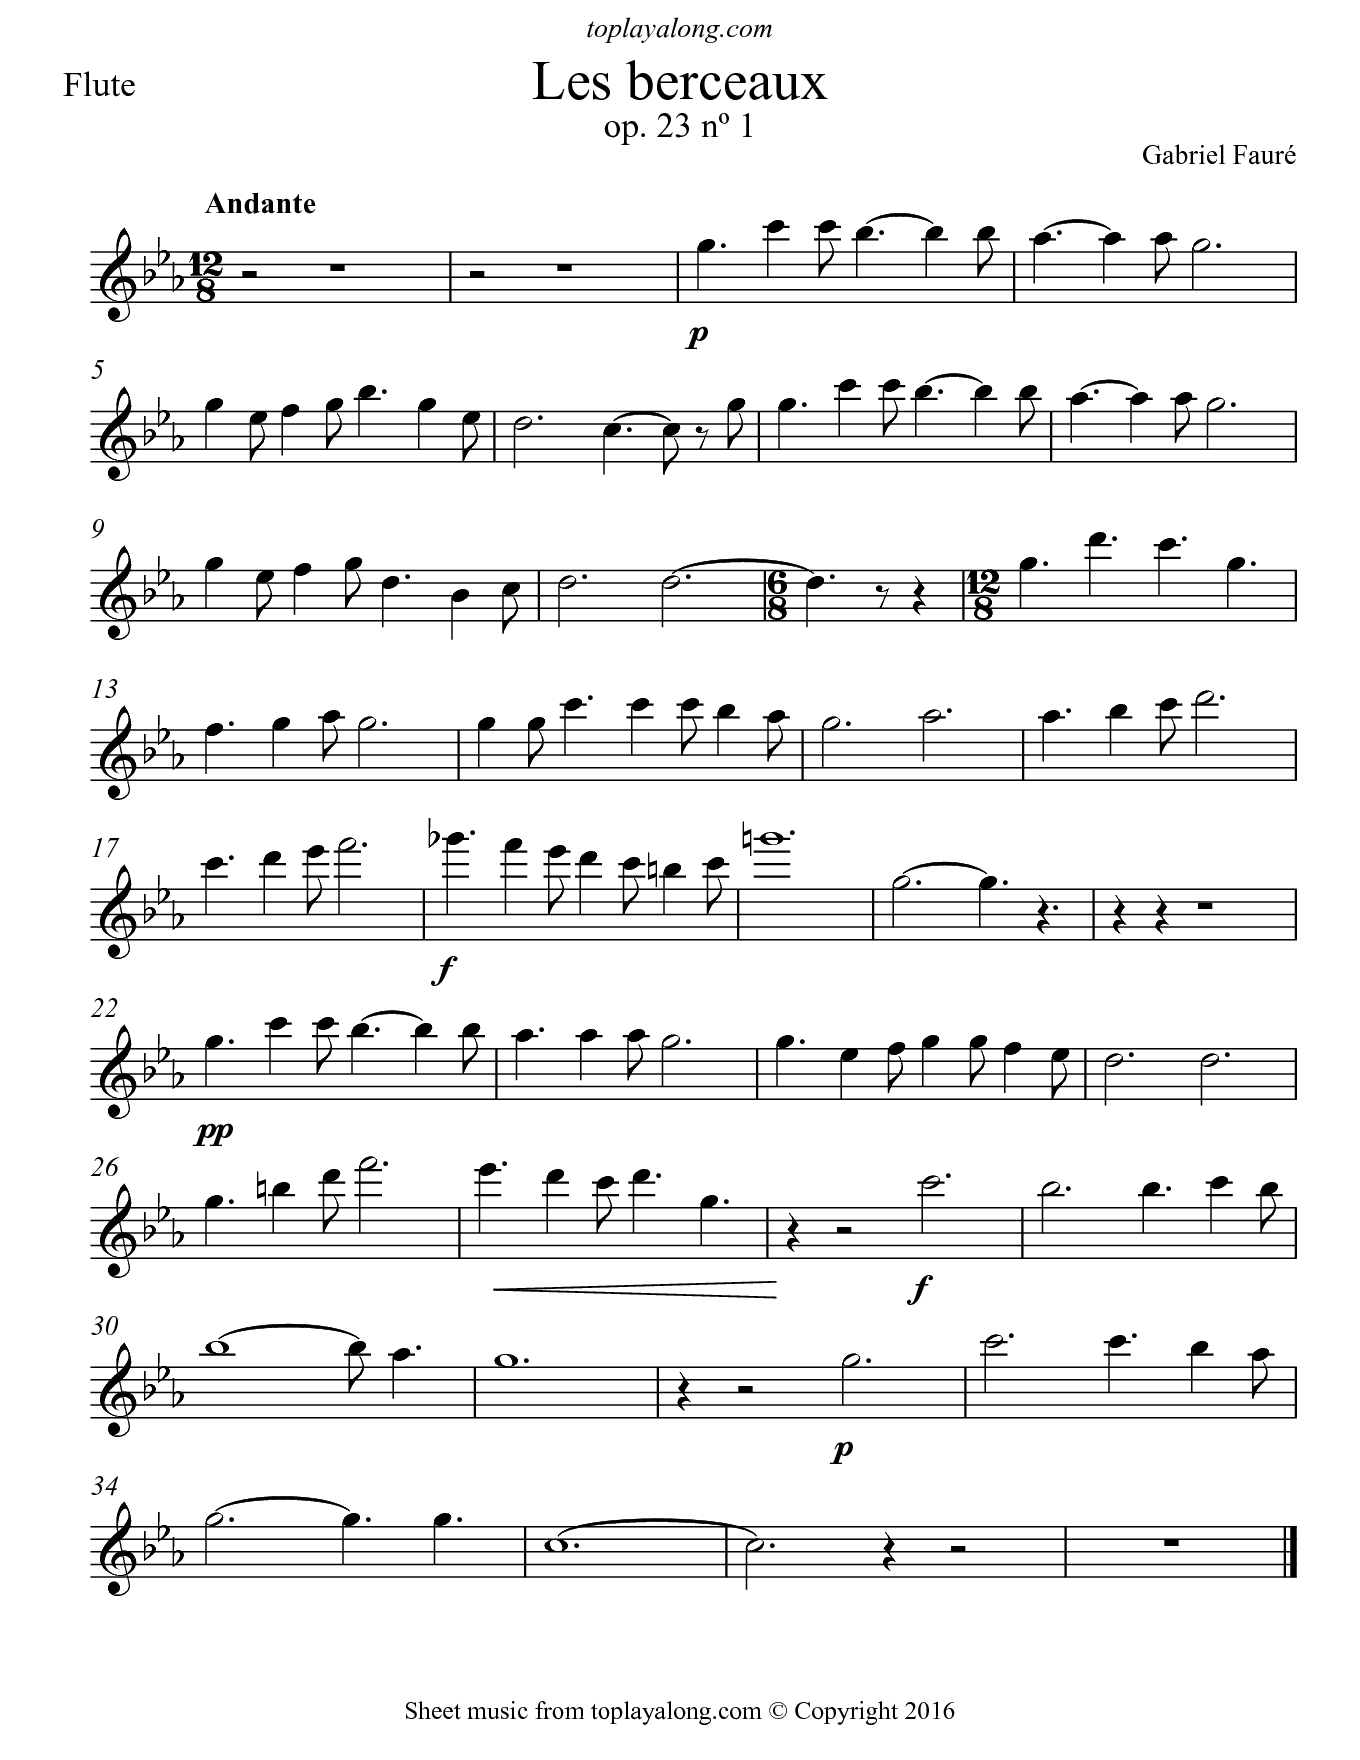 Les berceaux by Fauré. Sheet music for Flute, page 1.